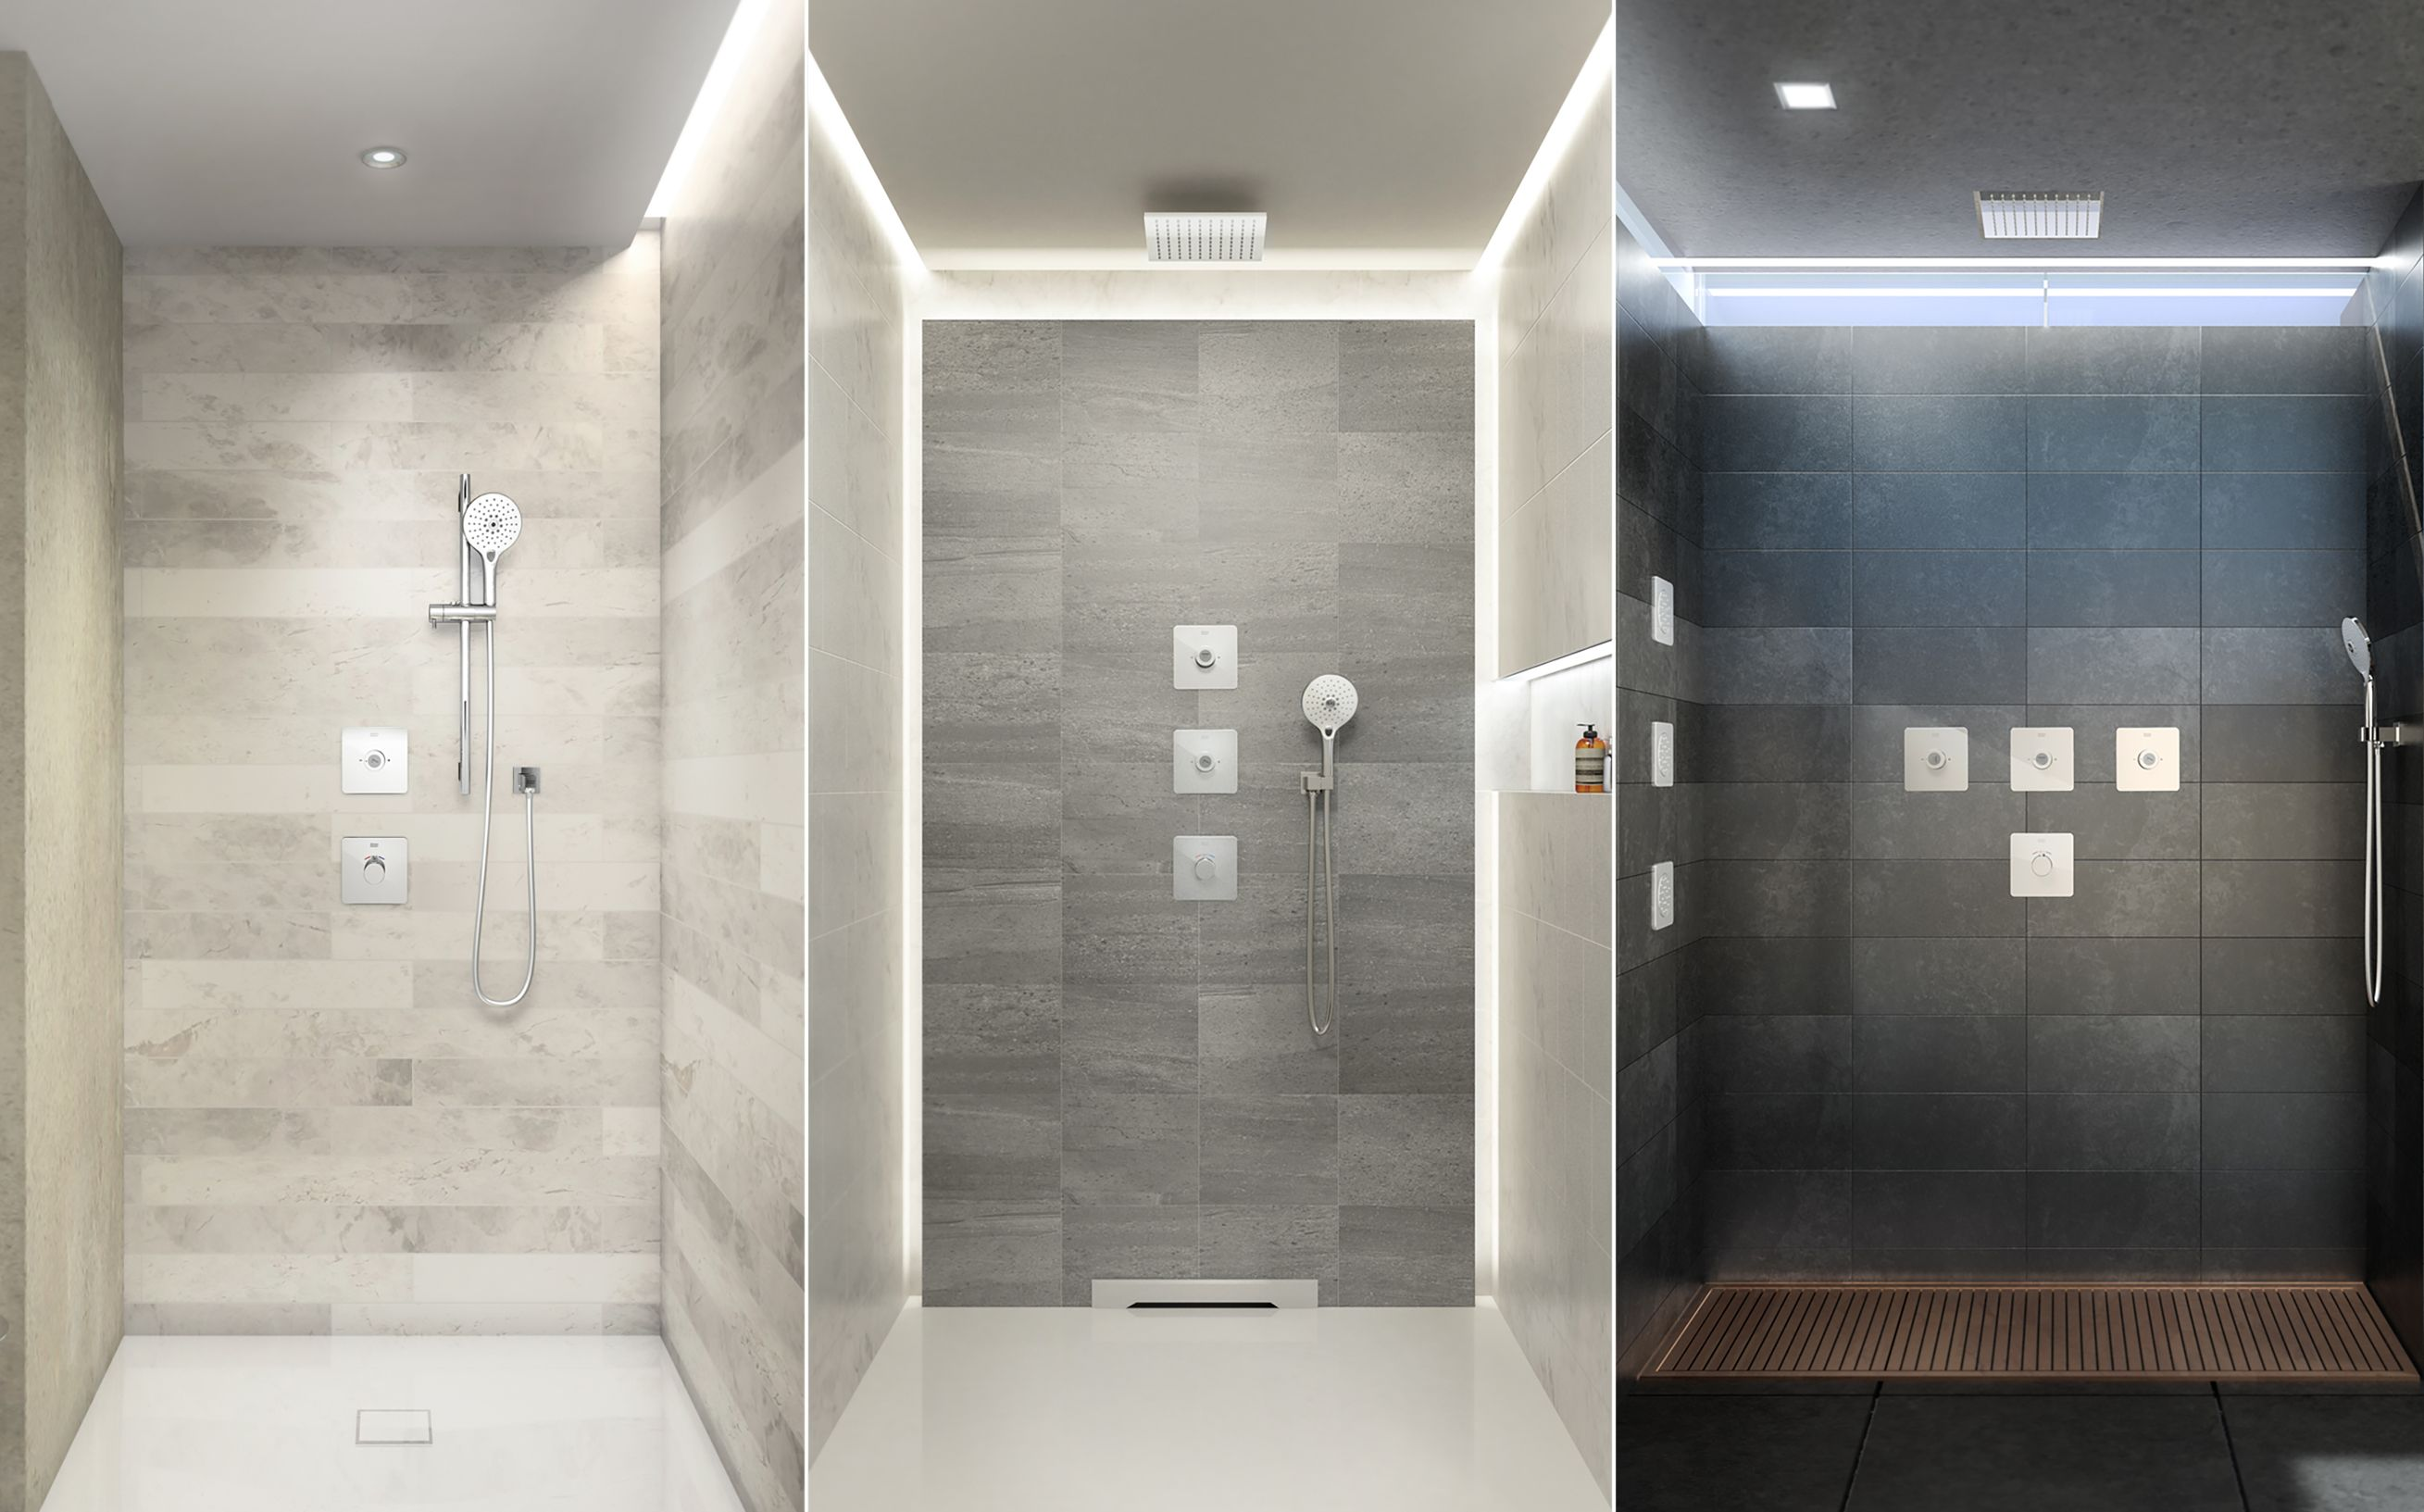 Easyset Push For An Extreme Shower Enjoyment American